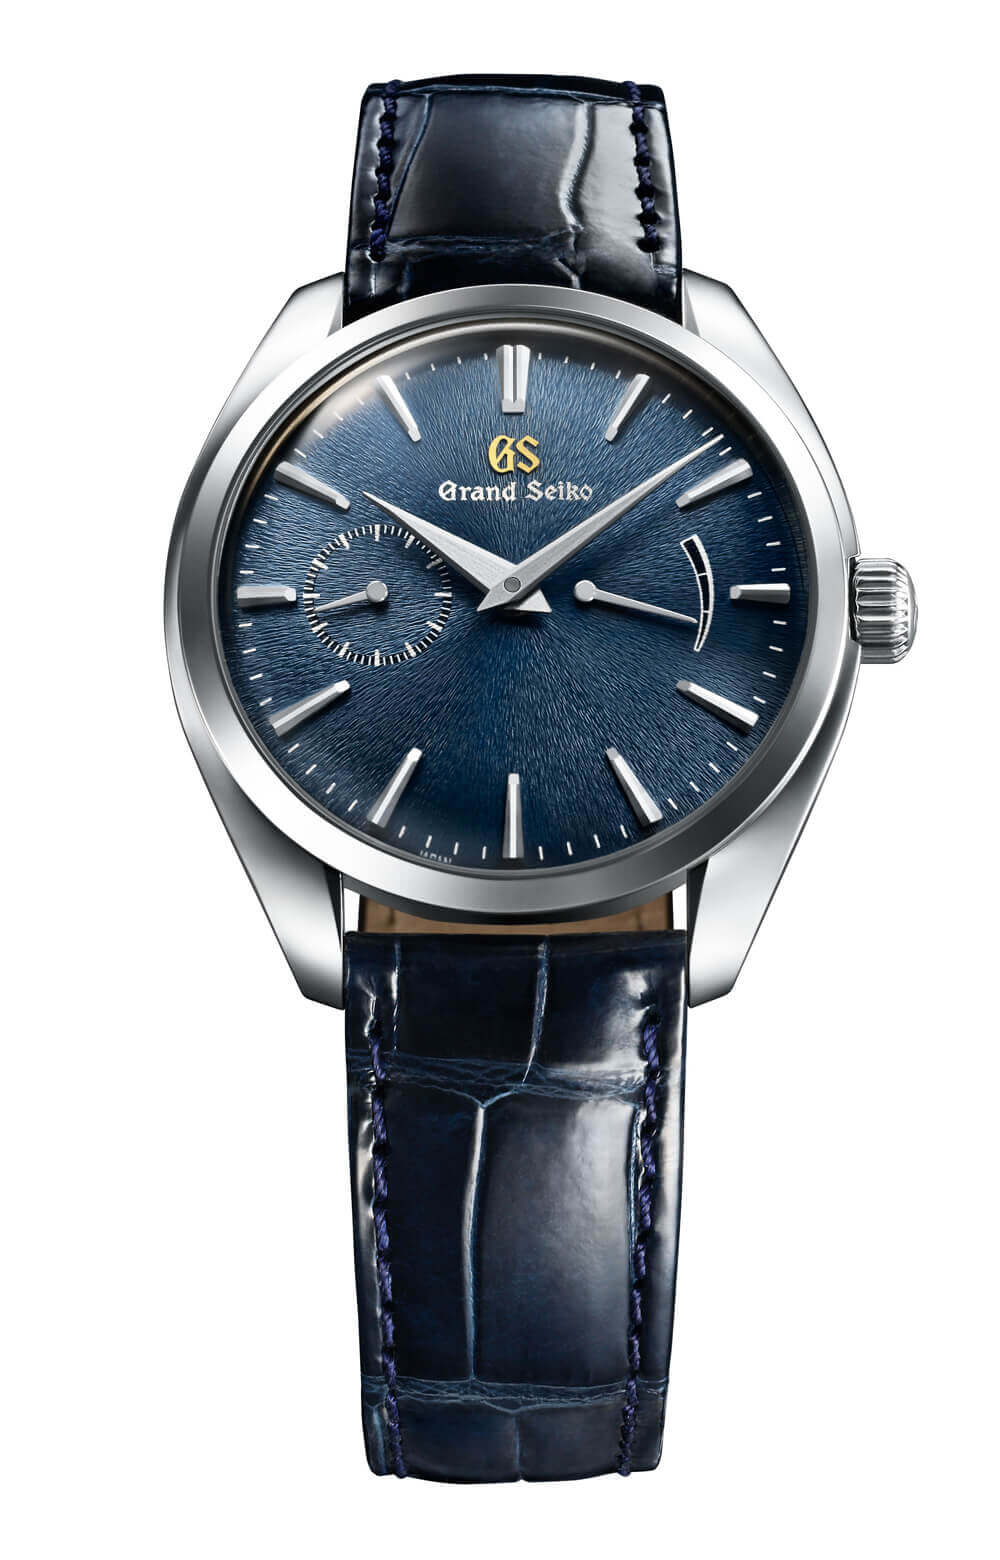 Grand Seiko Elegance Limited Edition Steel SBGK005